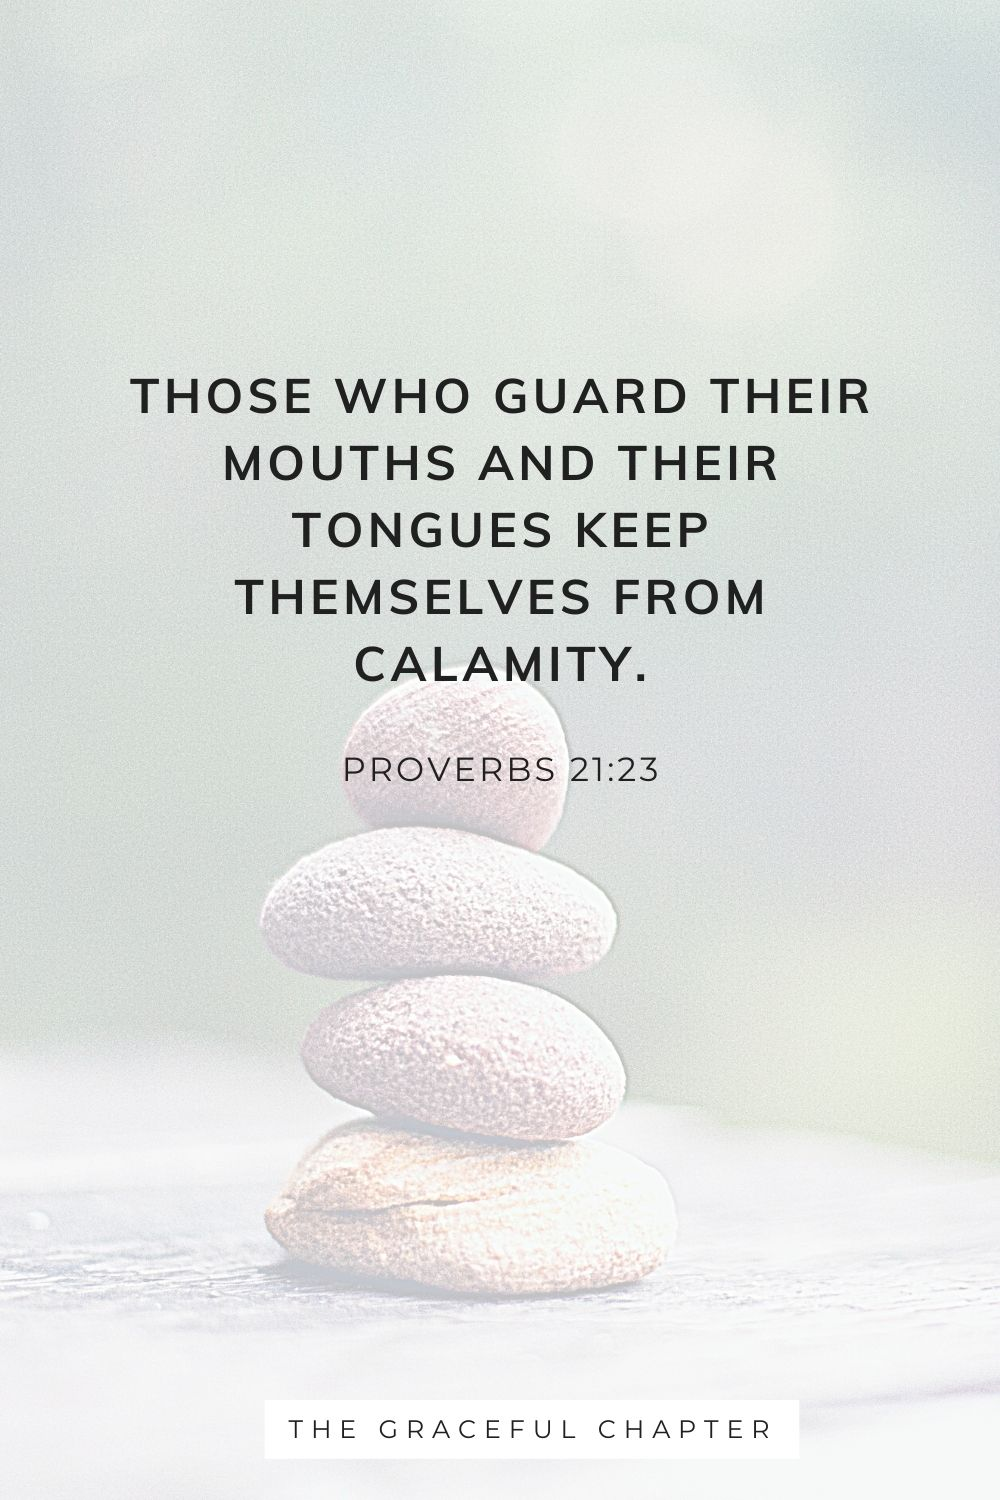 Those who guard their mouths and their tongues keep themselves from calamity. Proverbs 21:23